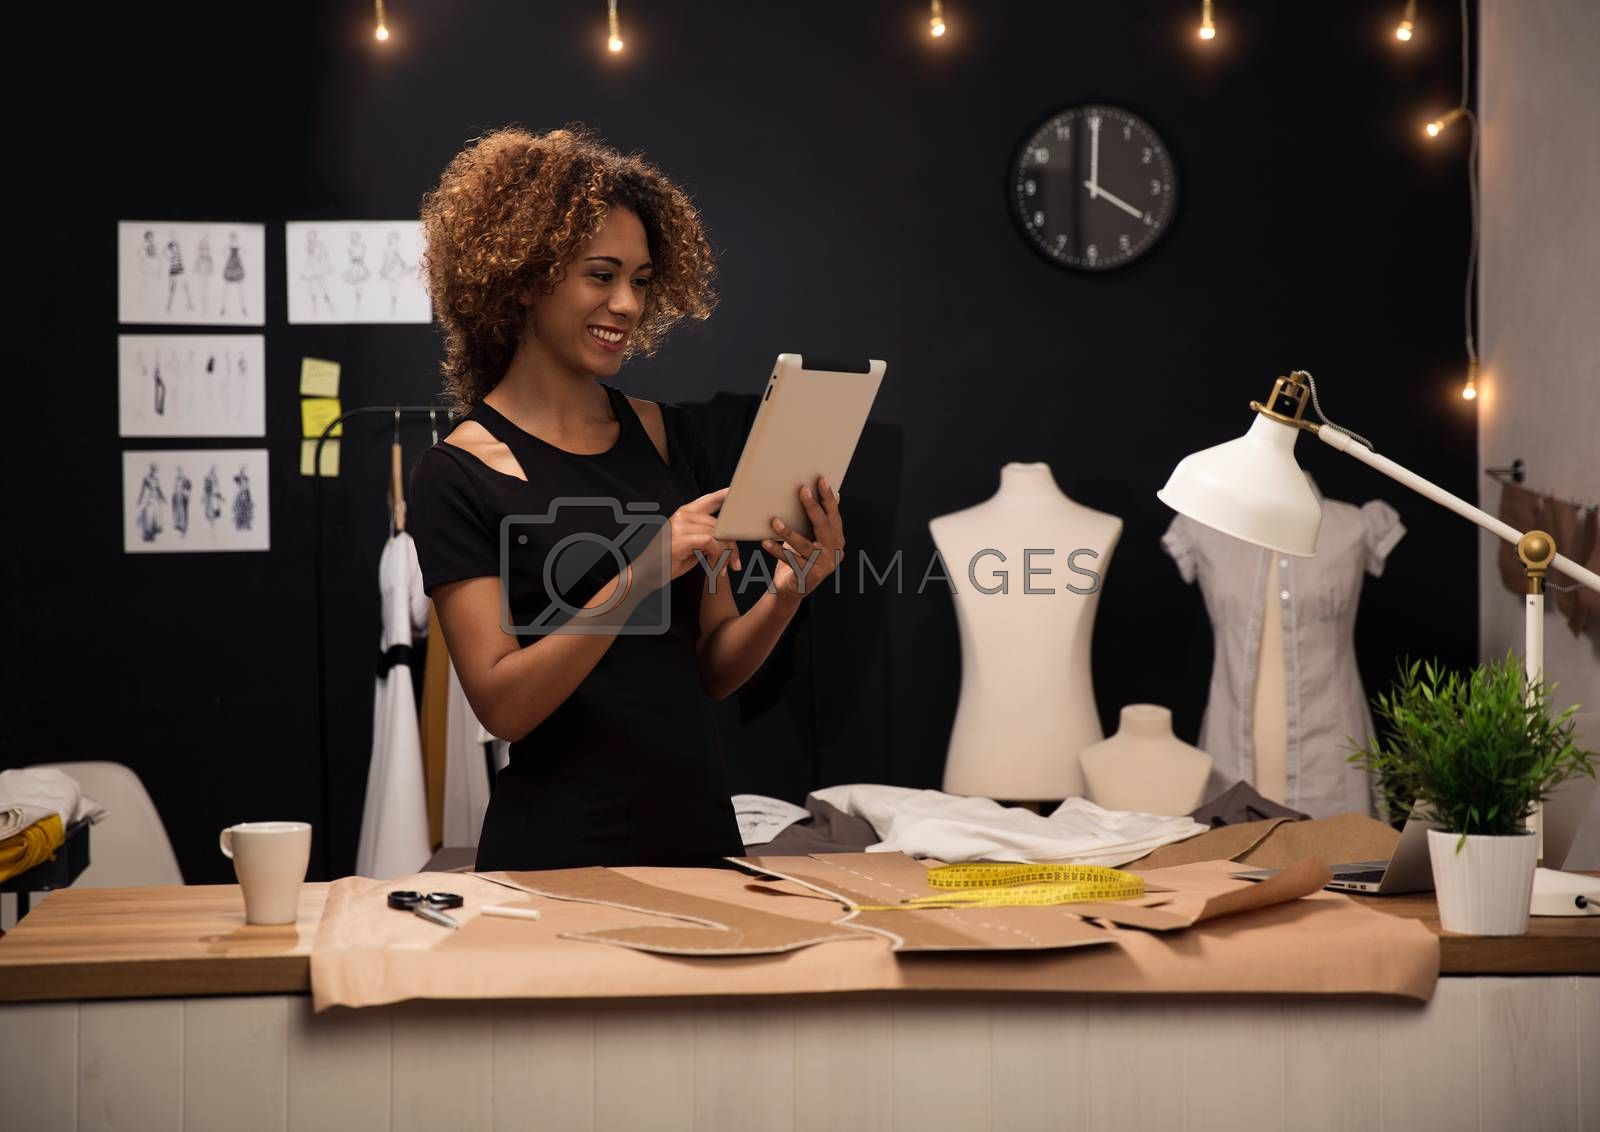 A young fashion designer on her atelier working with a tablet